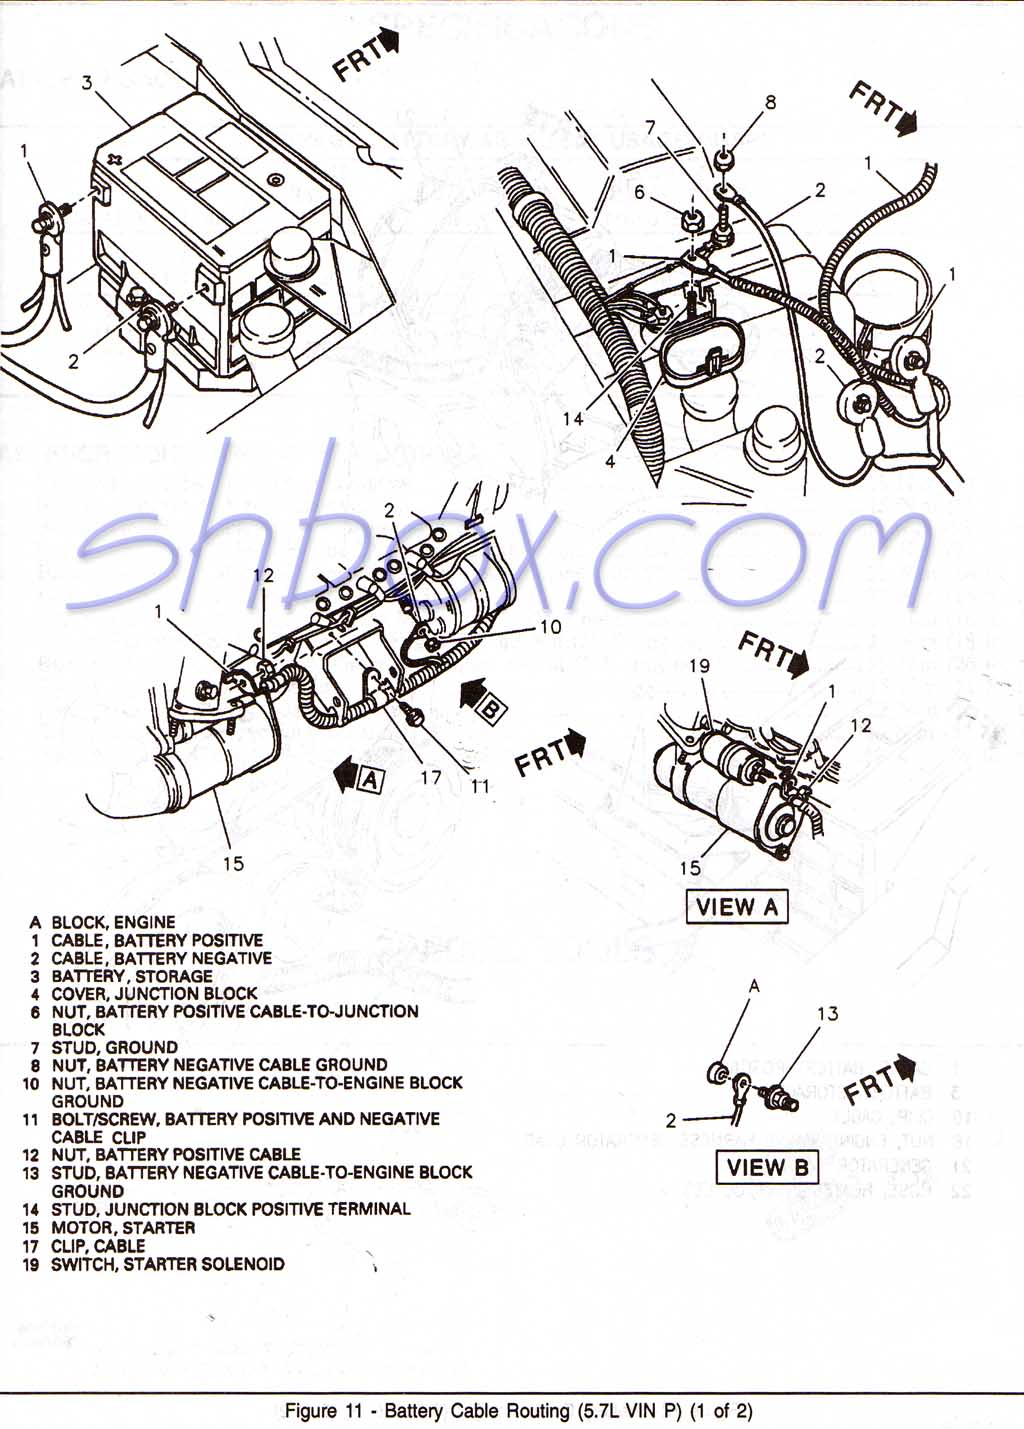 Camaro Car Stereo Wiring Harness Library Diagram Metra 71 1677 1 2001 Wire Battery Cable Routing View